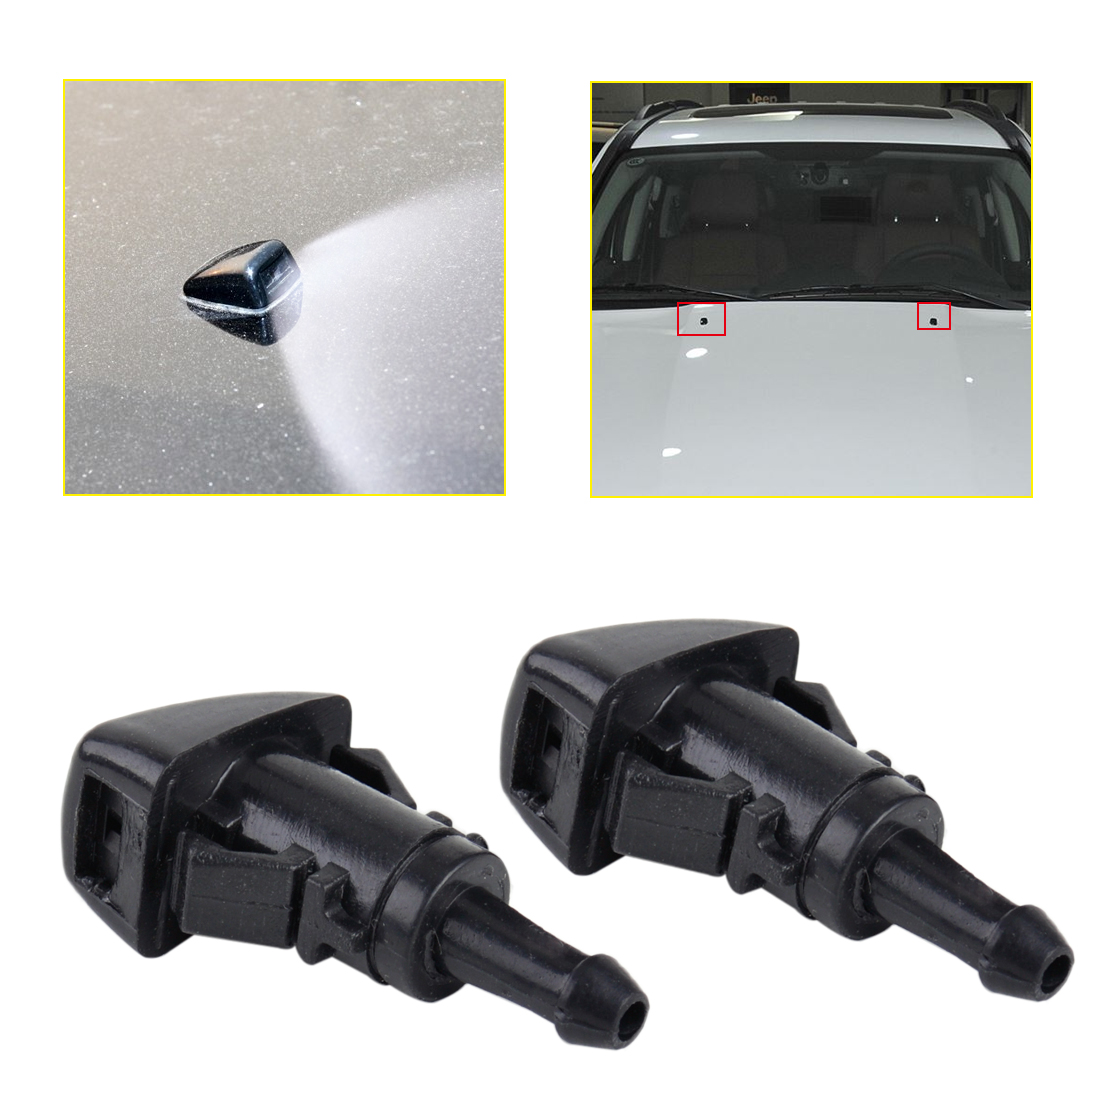 dwcx-2pcs-1-hole-car-windshield-washer-wiper-water-spray-nozzle-47186-fit-for-chrysler-300-dodge-avenger-jeep-compass-ram-1500